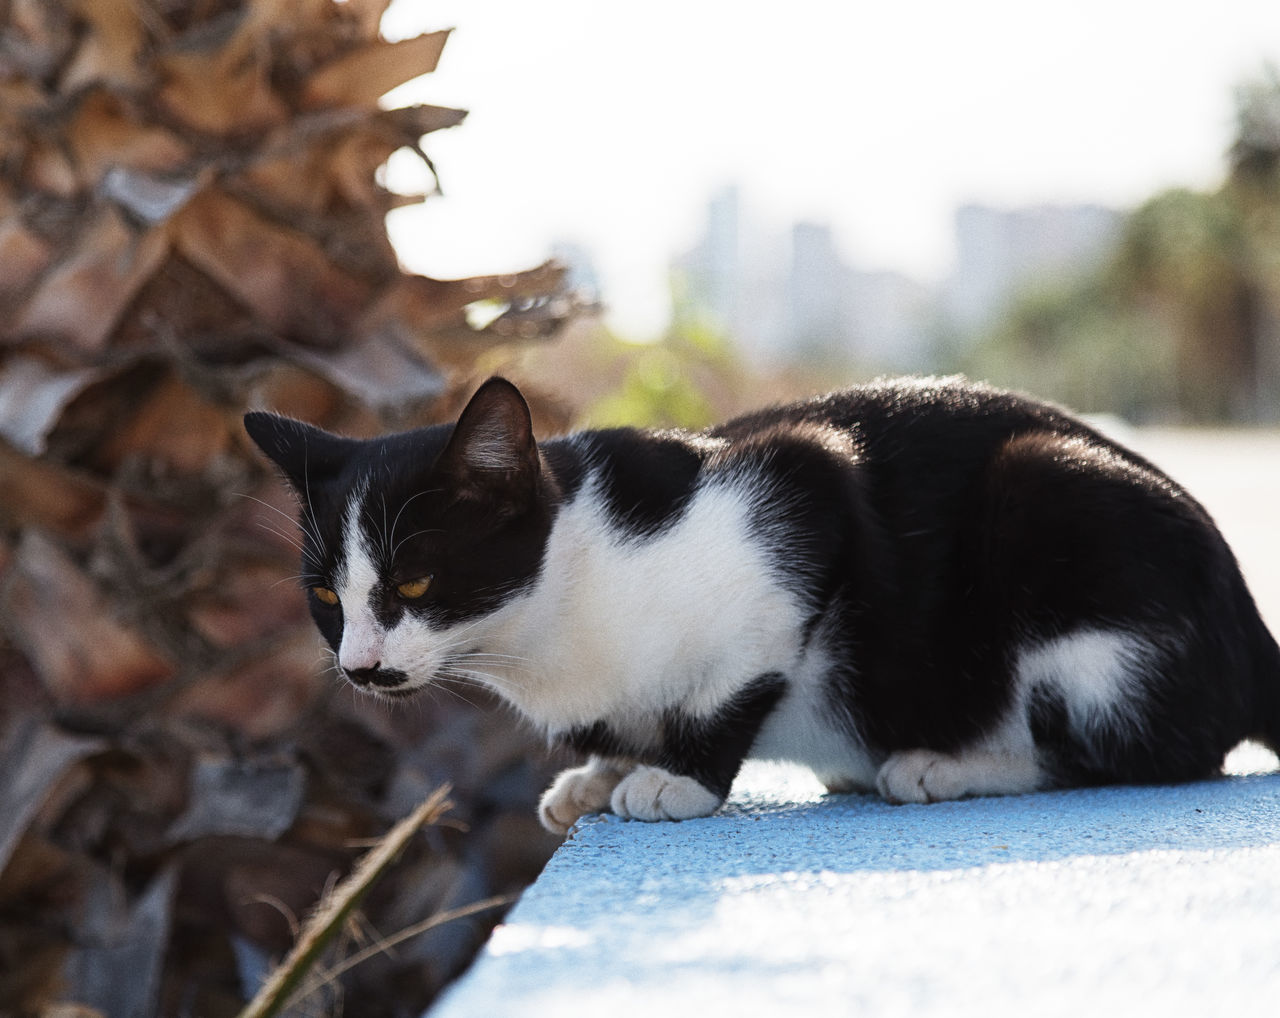 Street Cats Animal Themes Boulder Cats Coastline Domestic Animals Domestic Cat Feline Feline Portraits Mammal Mersin Turkey Nature One Animal Outdoors Pets Rock Formation Street Cats